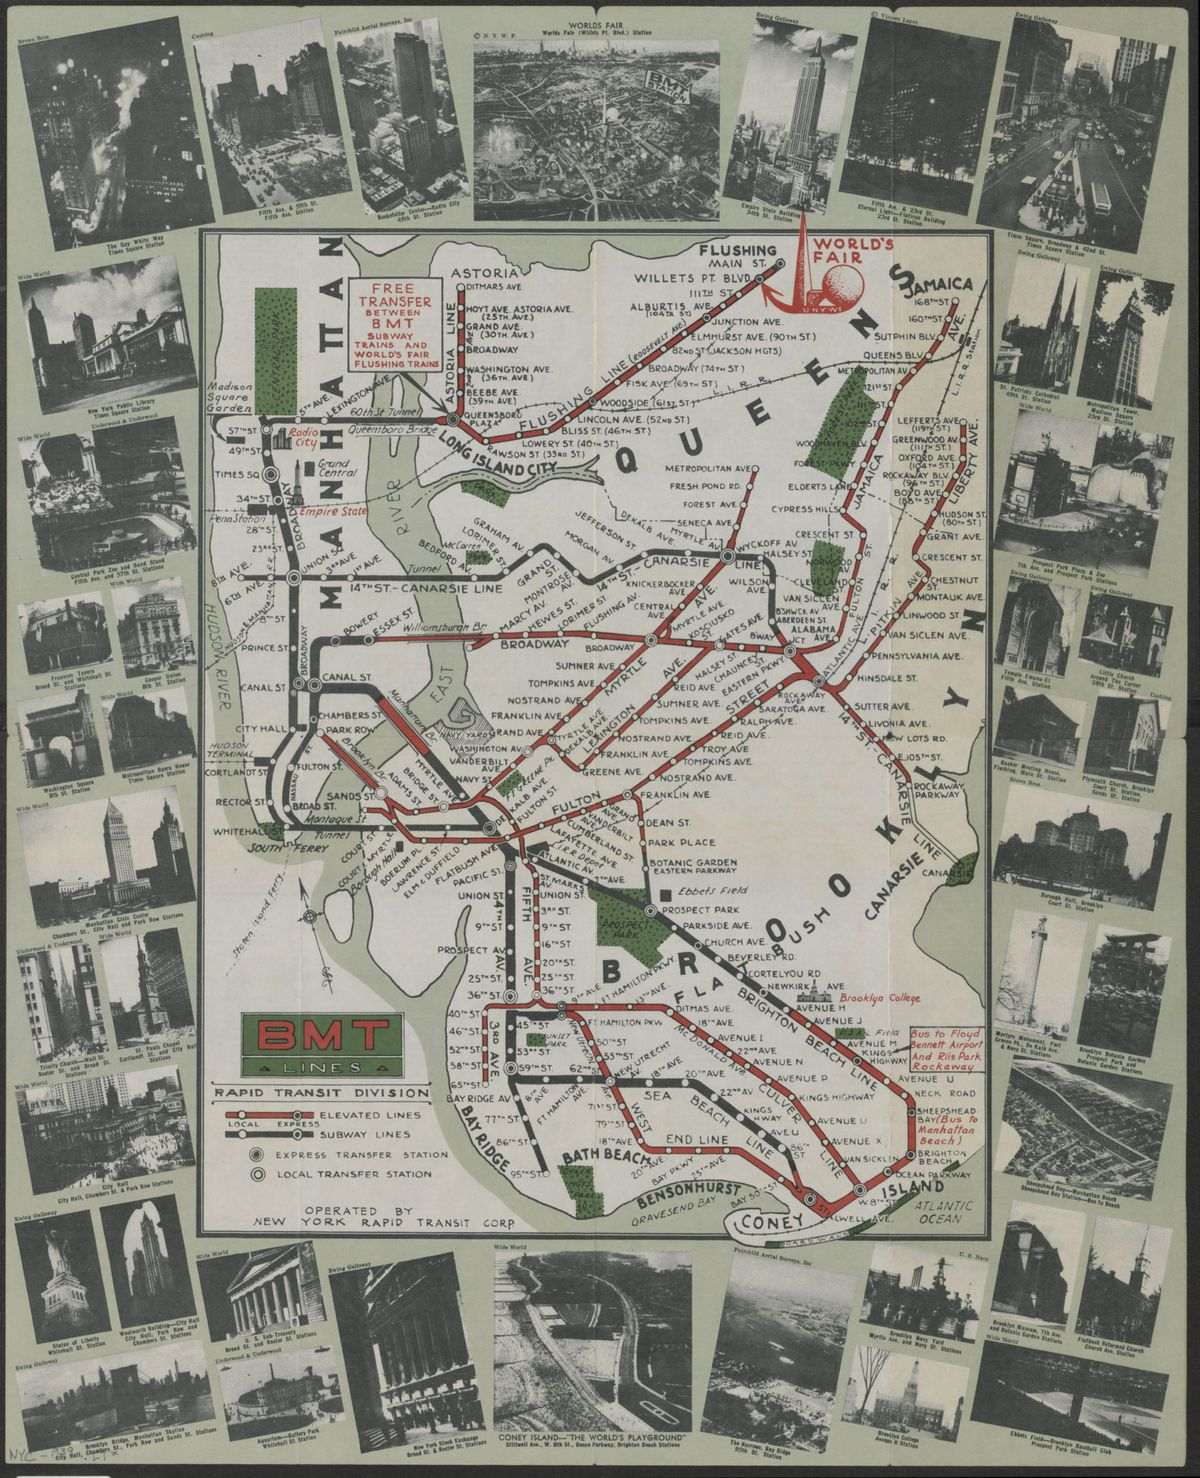 A busy red and green map of several subway routes snaking through Manhattan, Brooklyn and Queens in 1939. The map is surrounded by a border of black and white photographs of New York City landmarks.